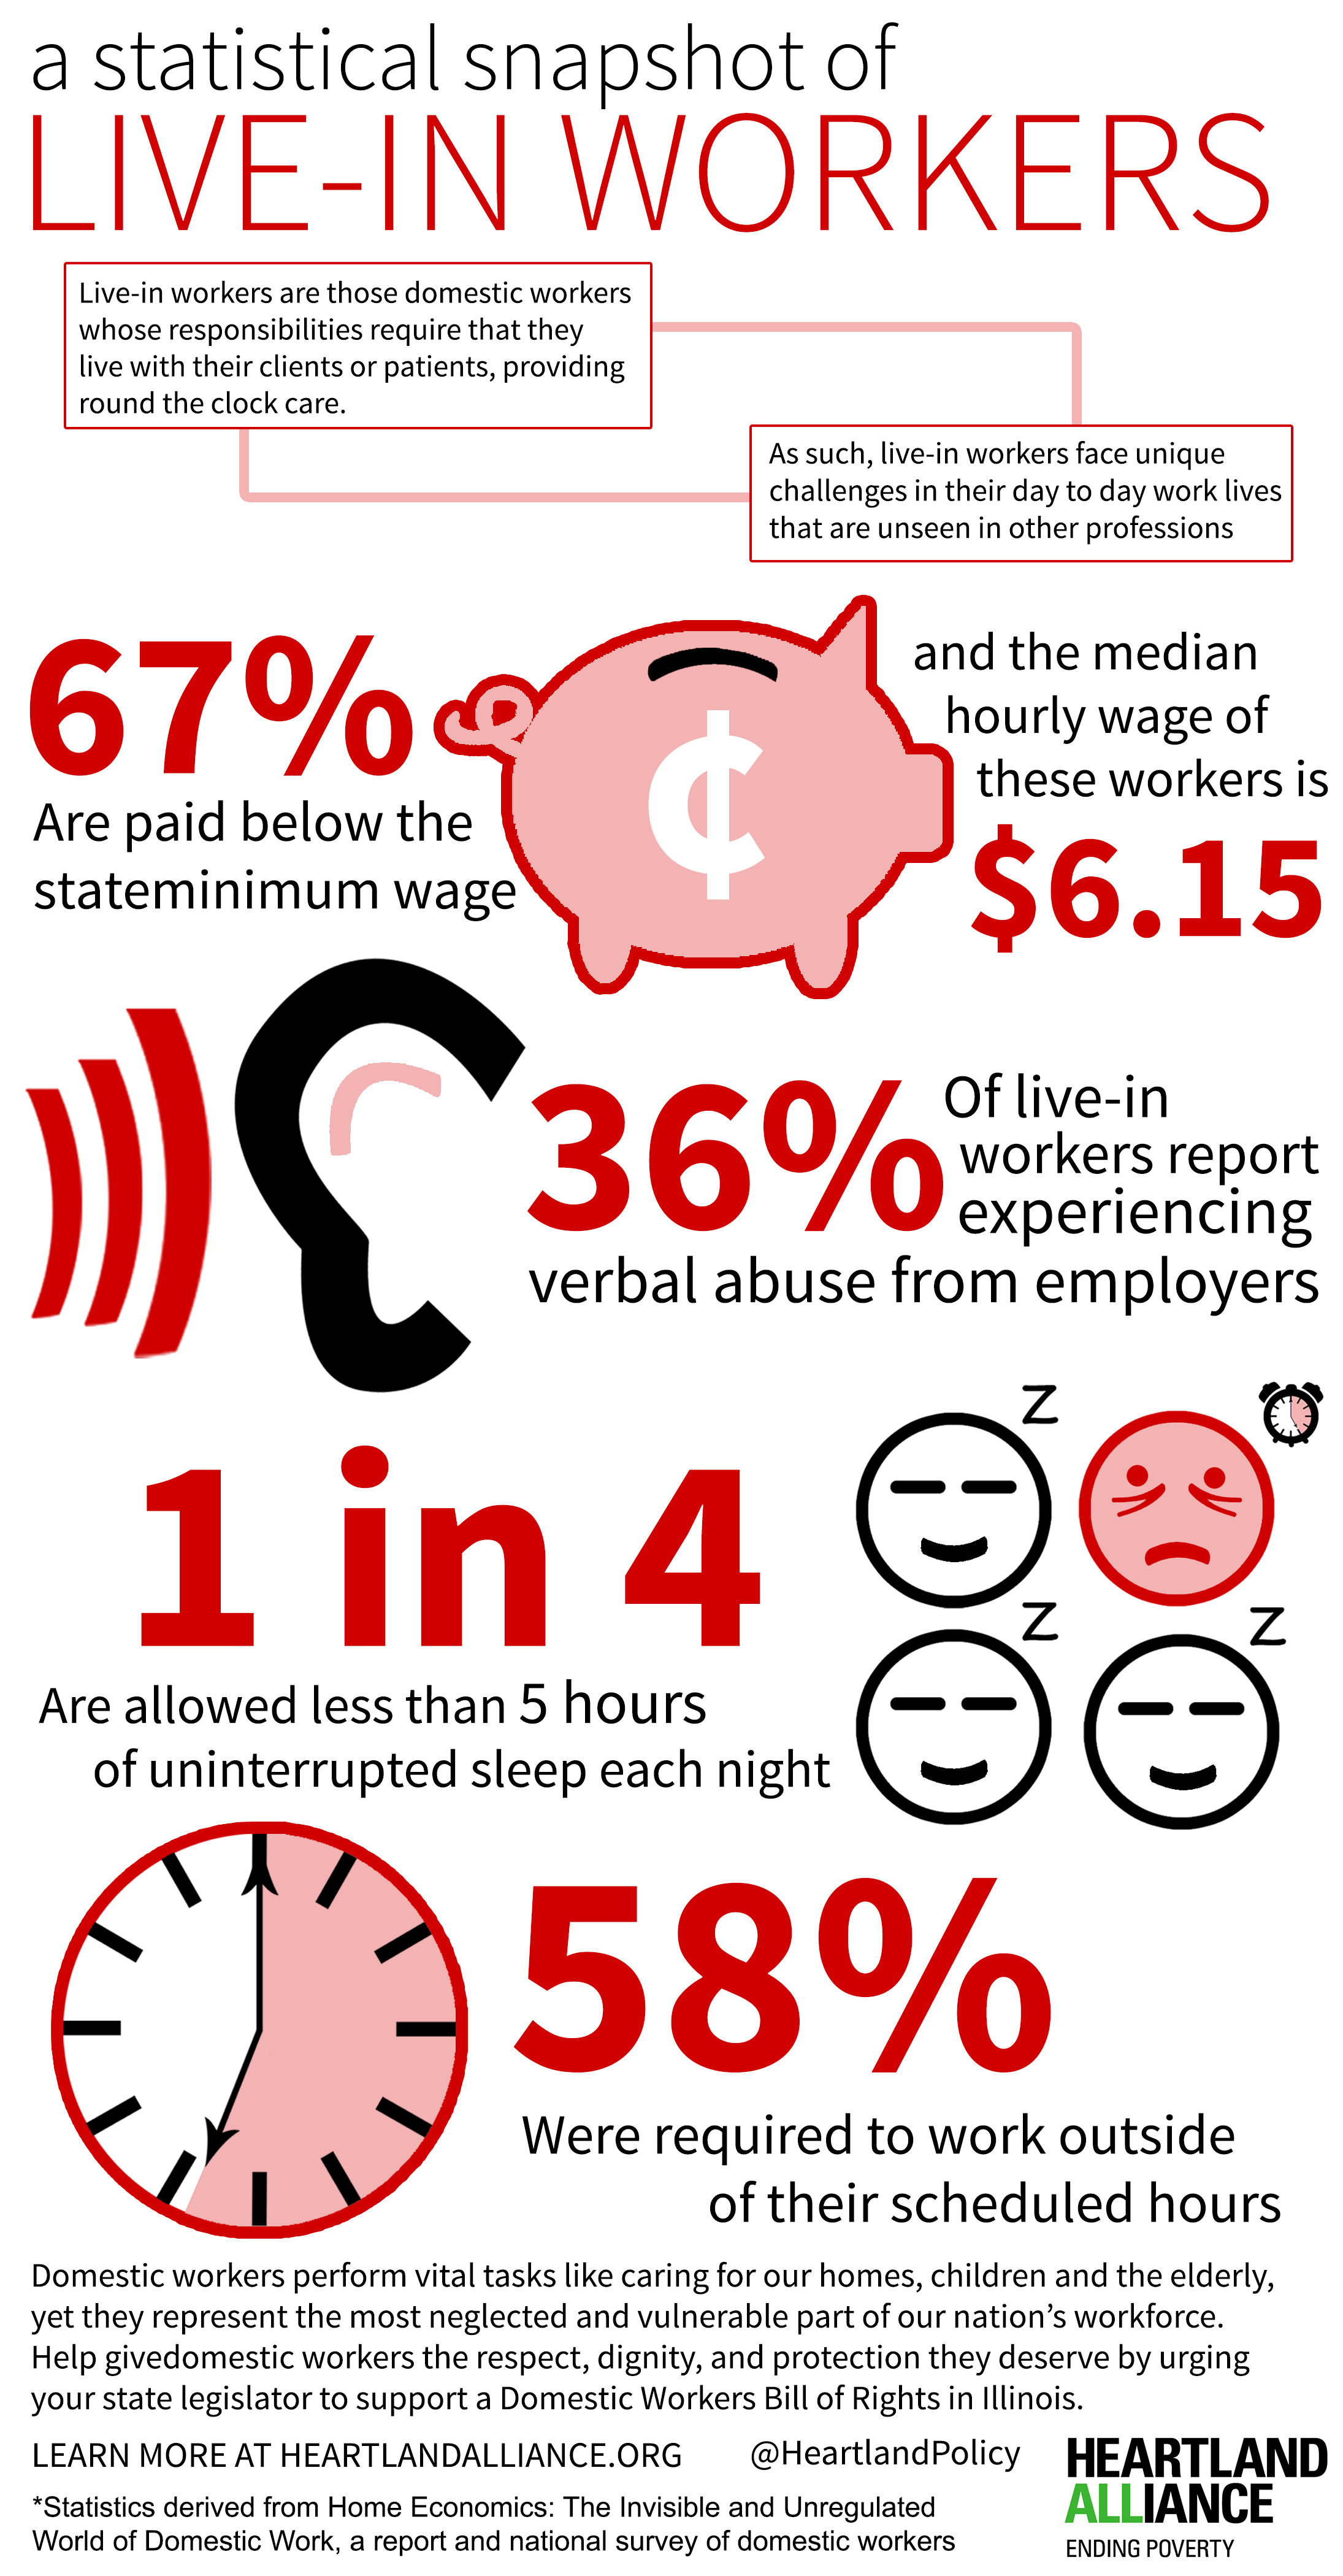 A Statistical Snapshot of Live-In Workers